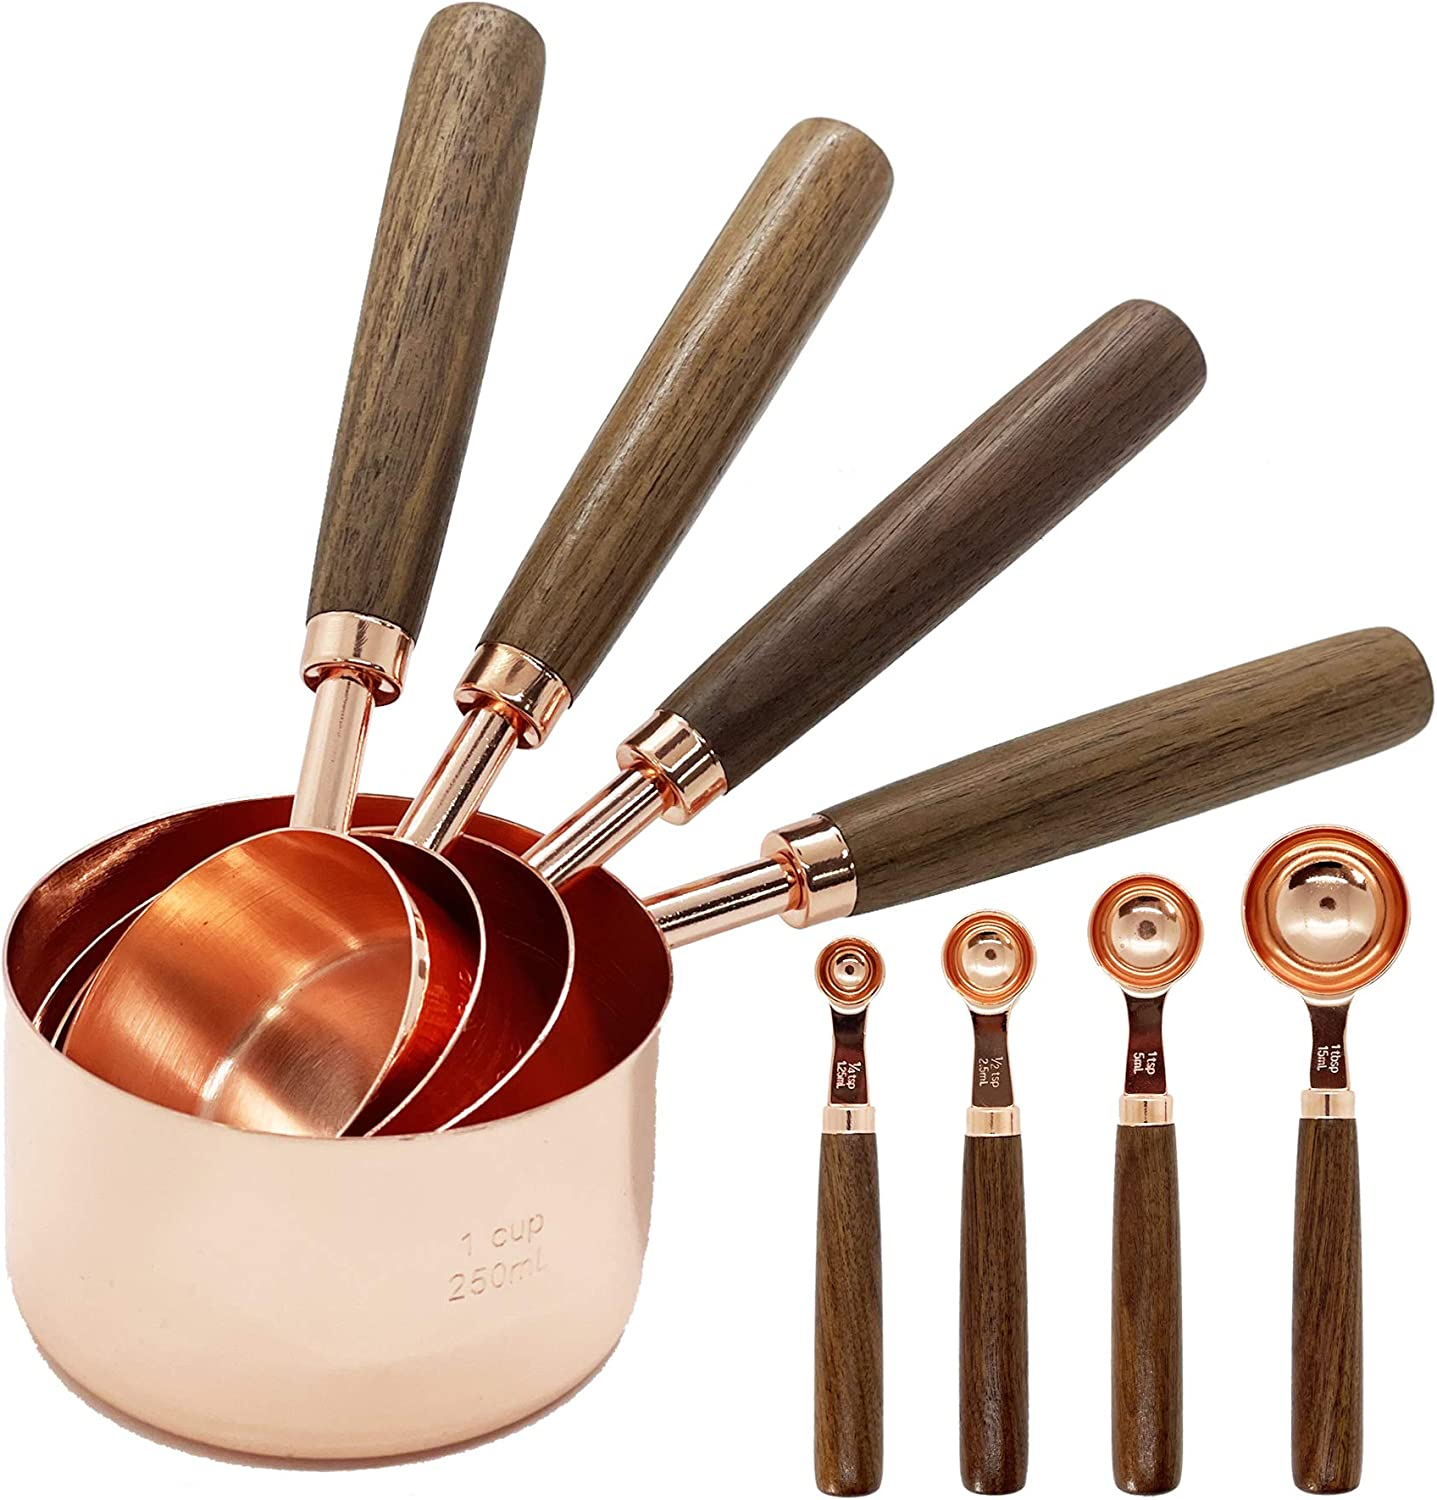 Stainless Steel Measuring Cups and Spoons - Set of 8 Measuring Cups and Spoons Set with Walnut Wood Handle, Nesting Measuring Cup Set for Dry and Liquid Ingredients (Rose Gold)